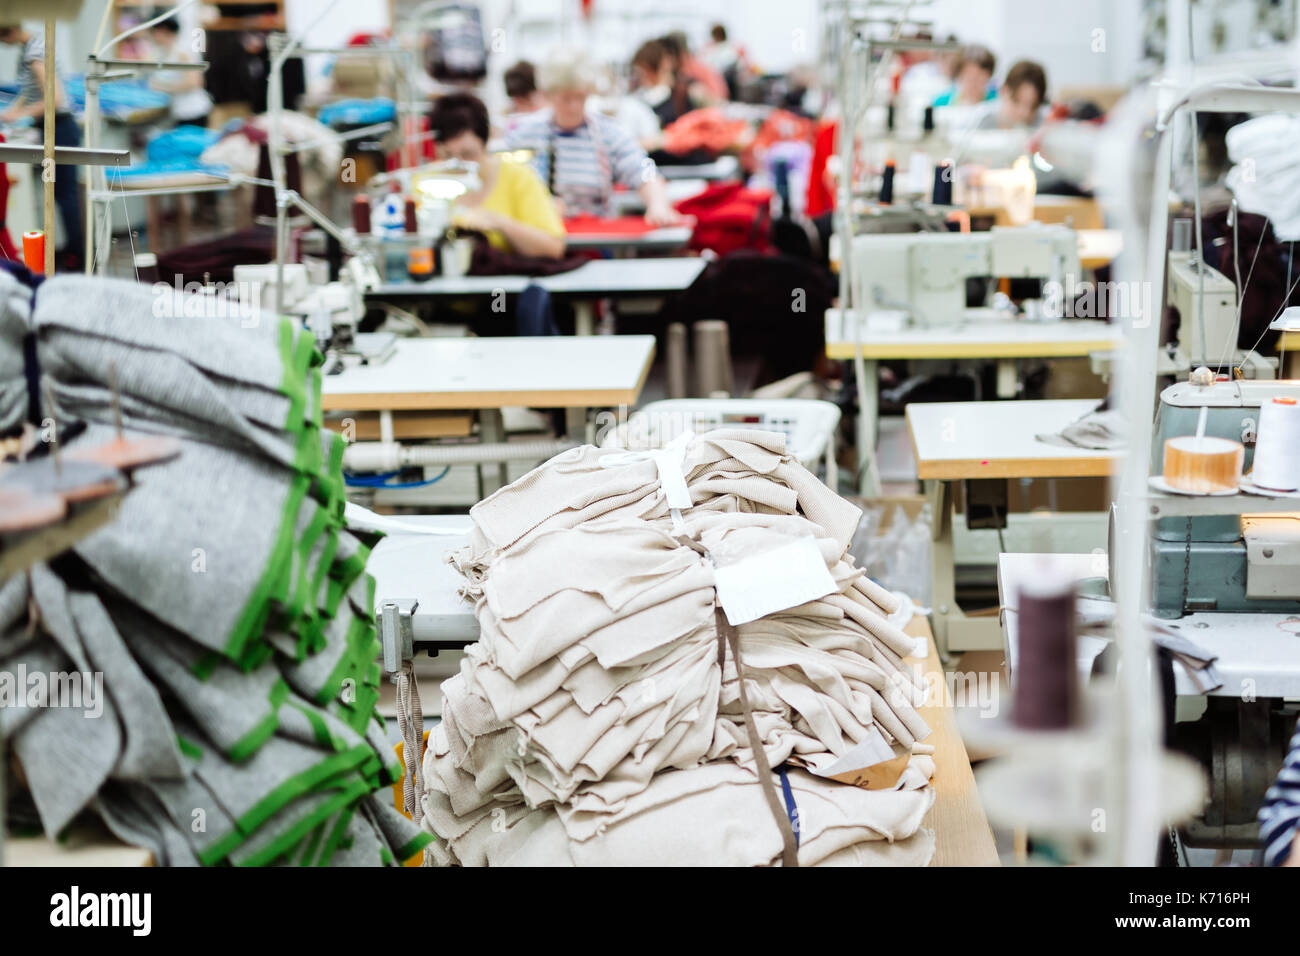 Sewing industry - Stock Image